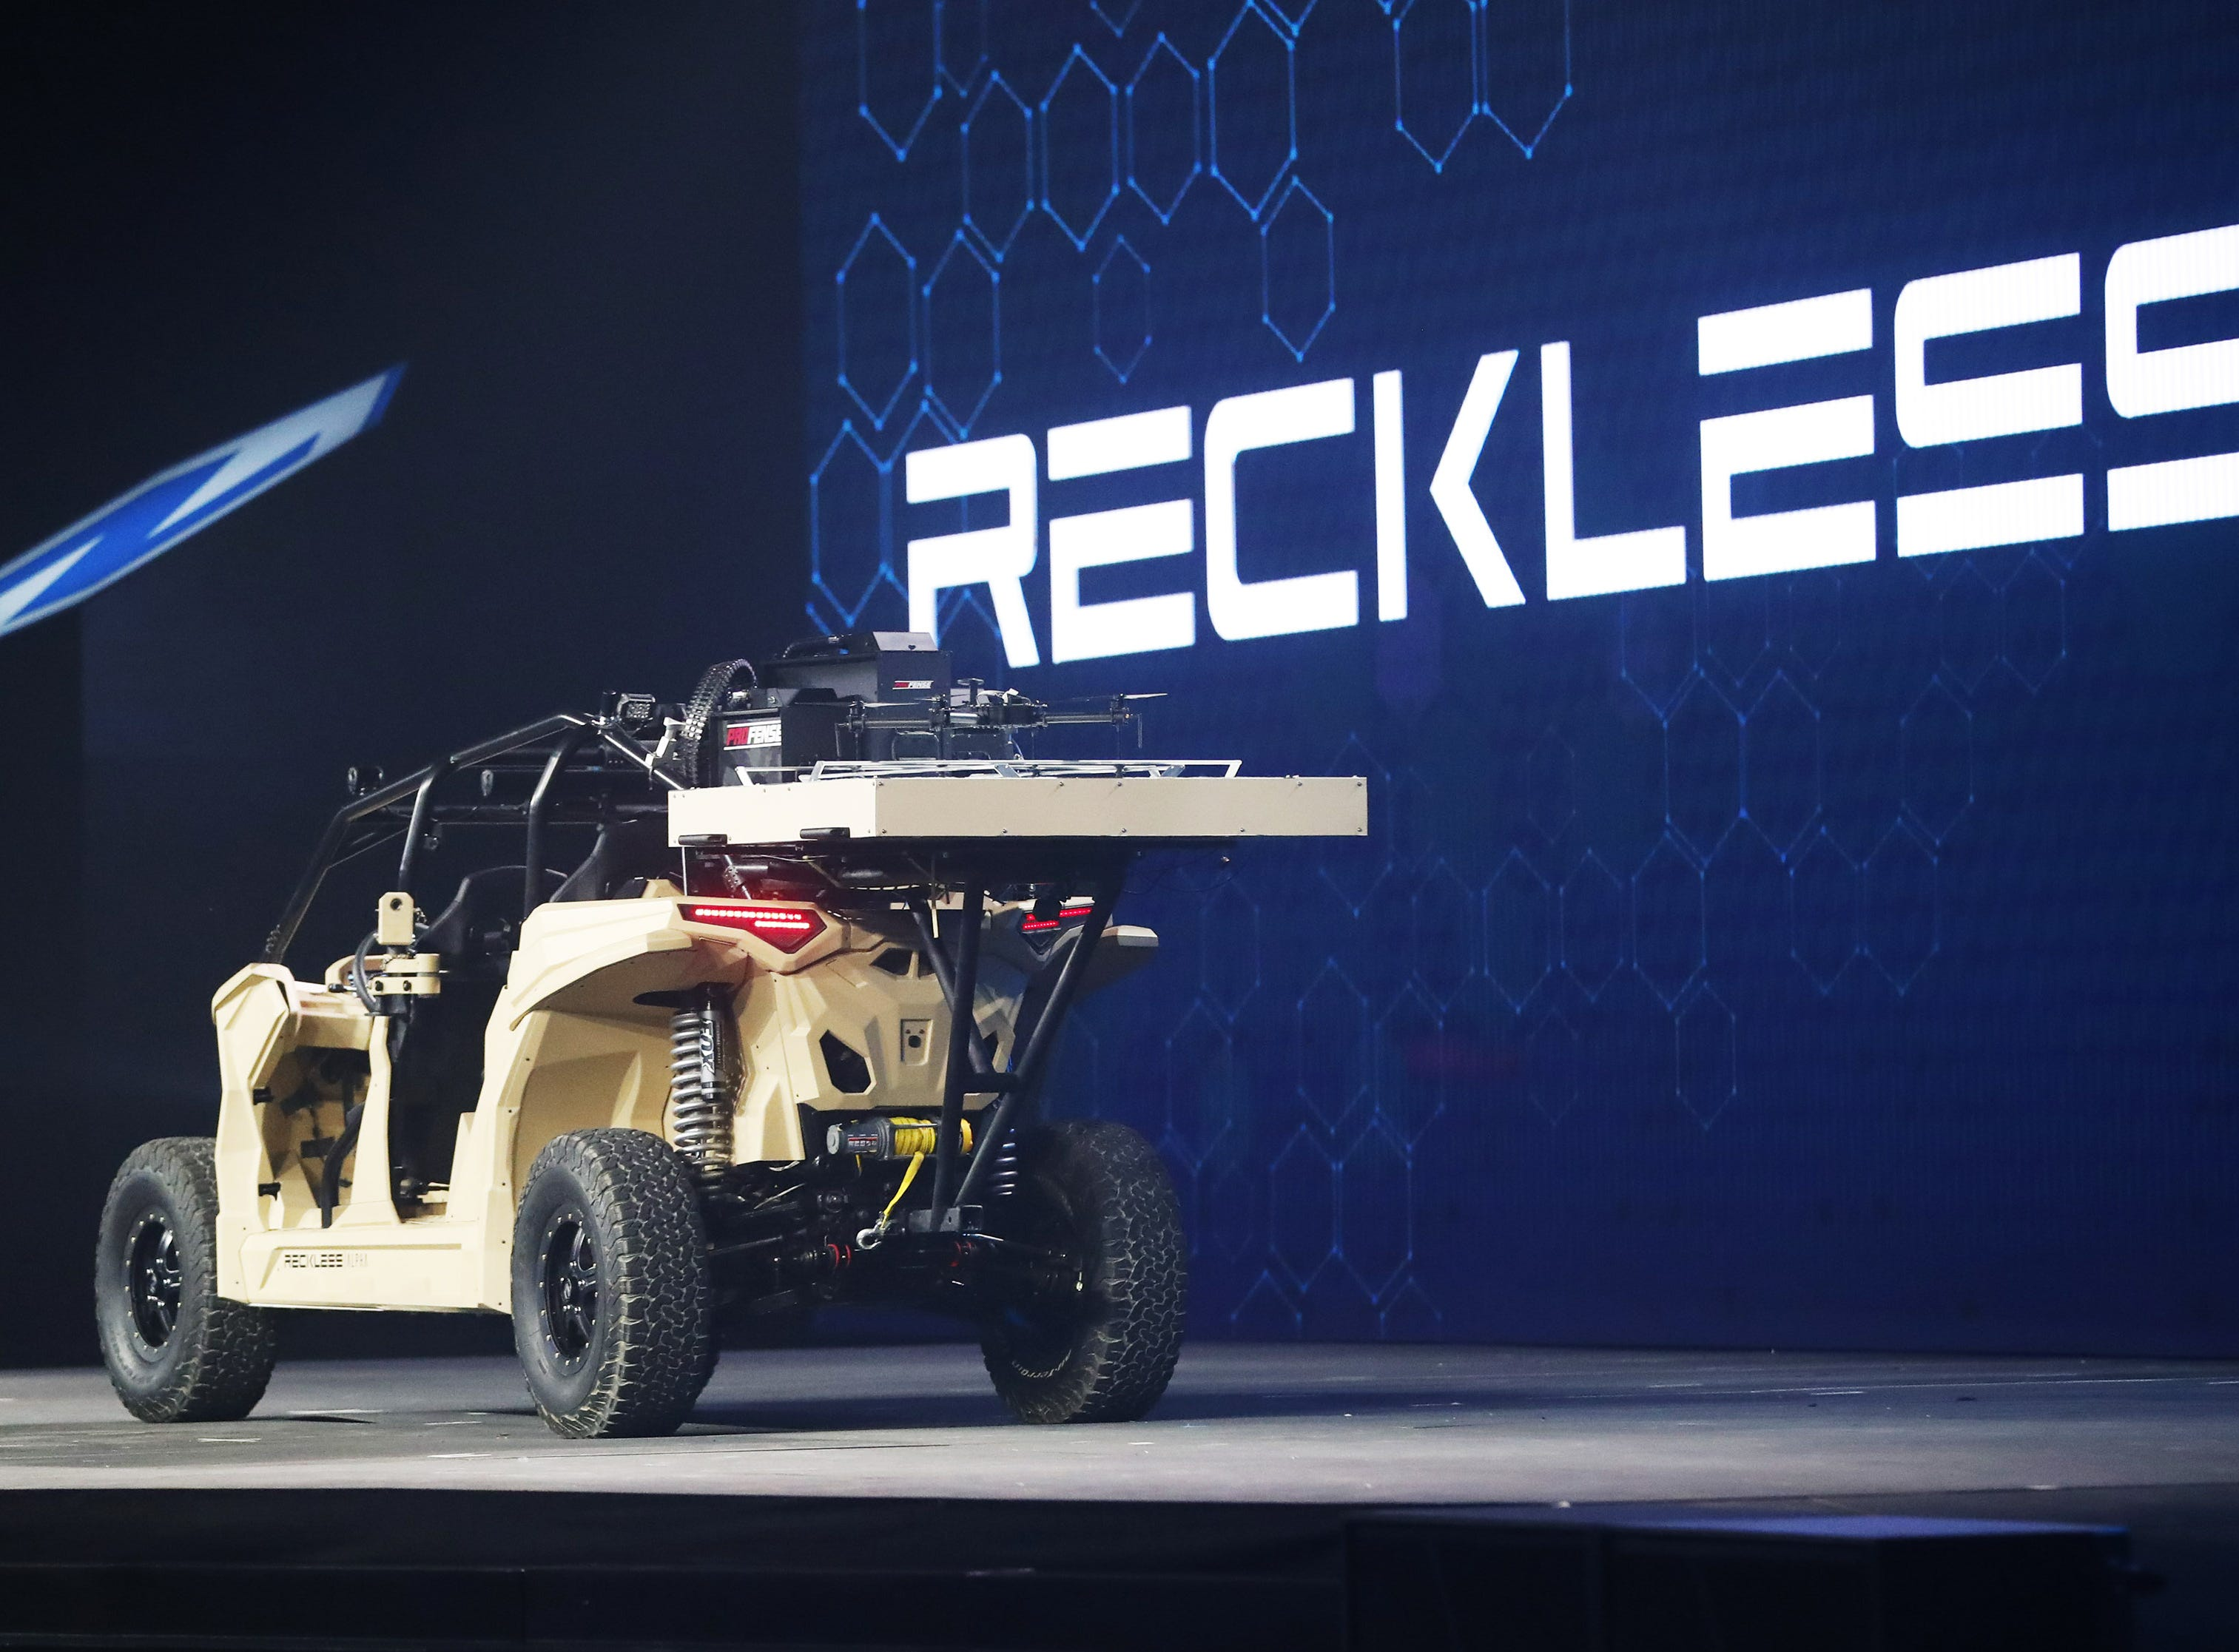 The Nikola Reckless shown at Nikola World 2019 at Westworld in Scottsdale, Ariz. April 16, 2019.